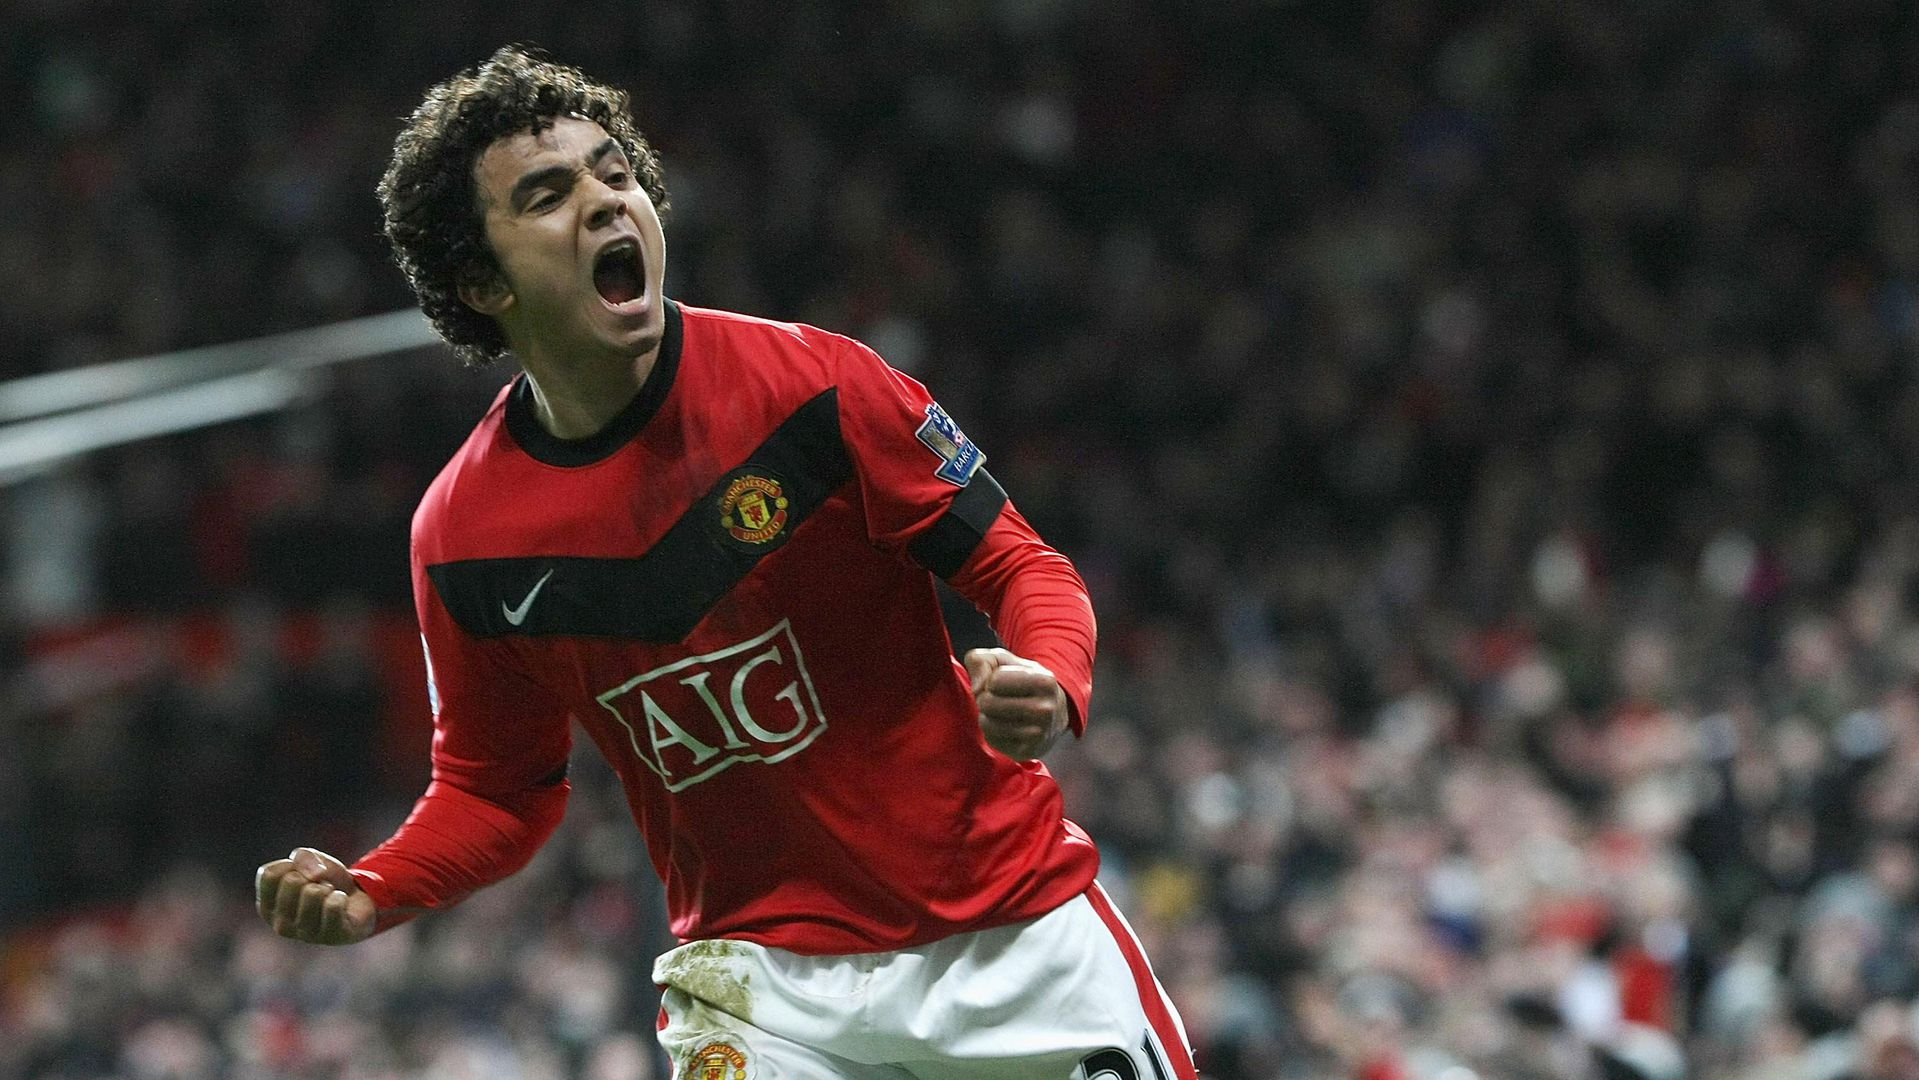 Cult Man United hero Rafael names dream six a side team - Manchester United